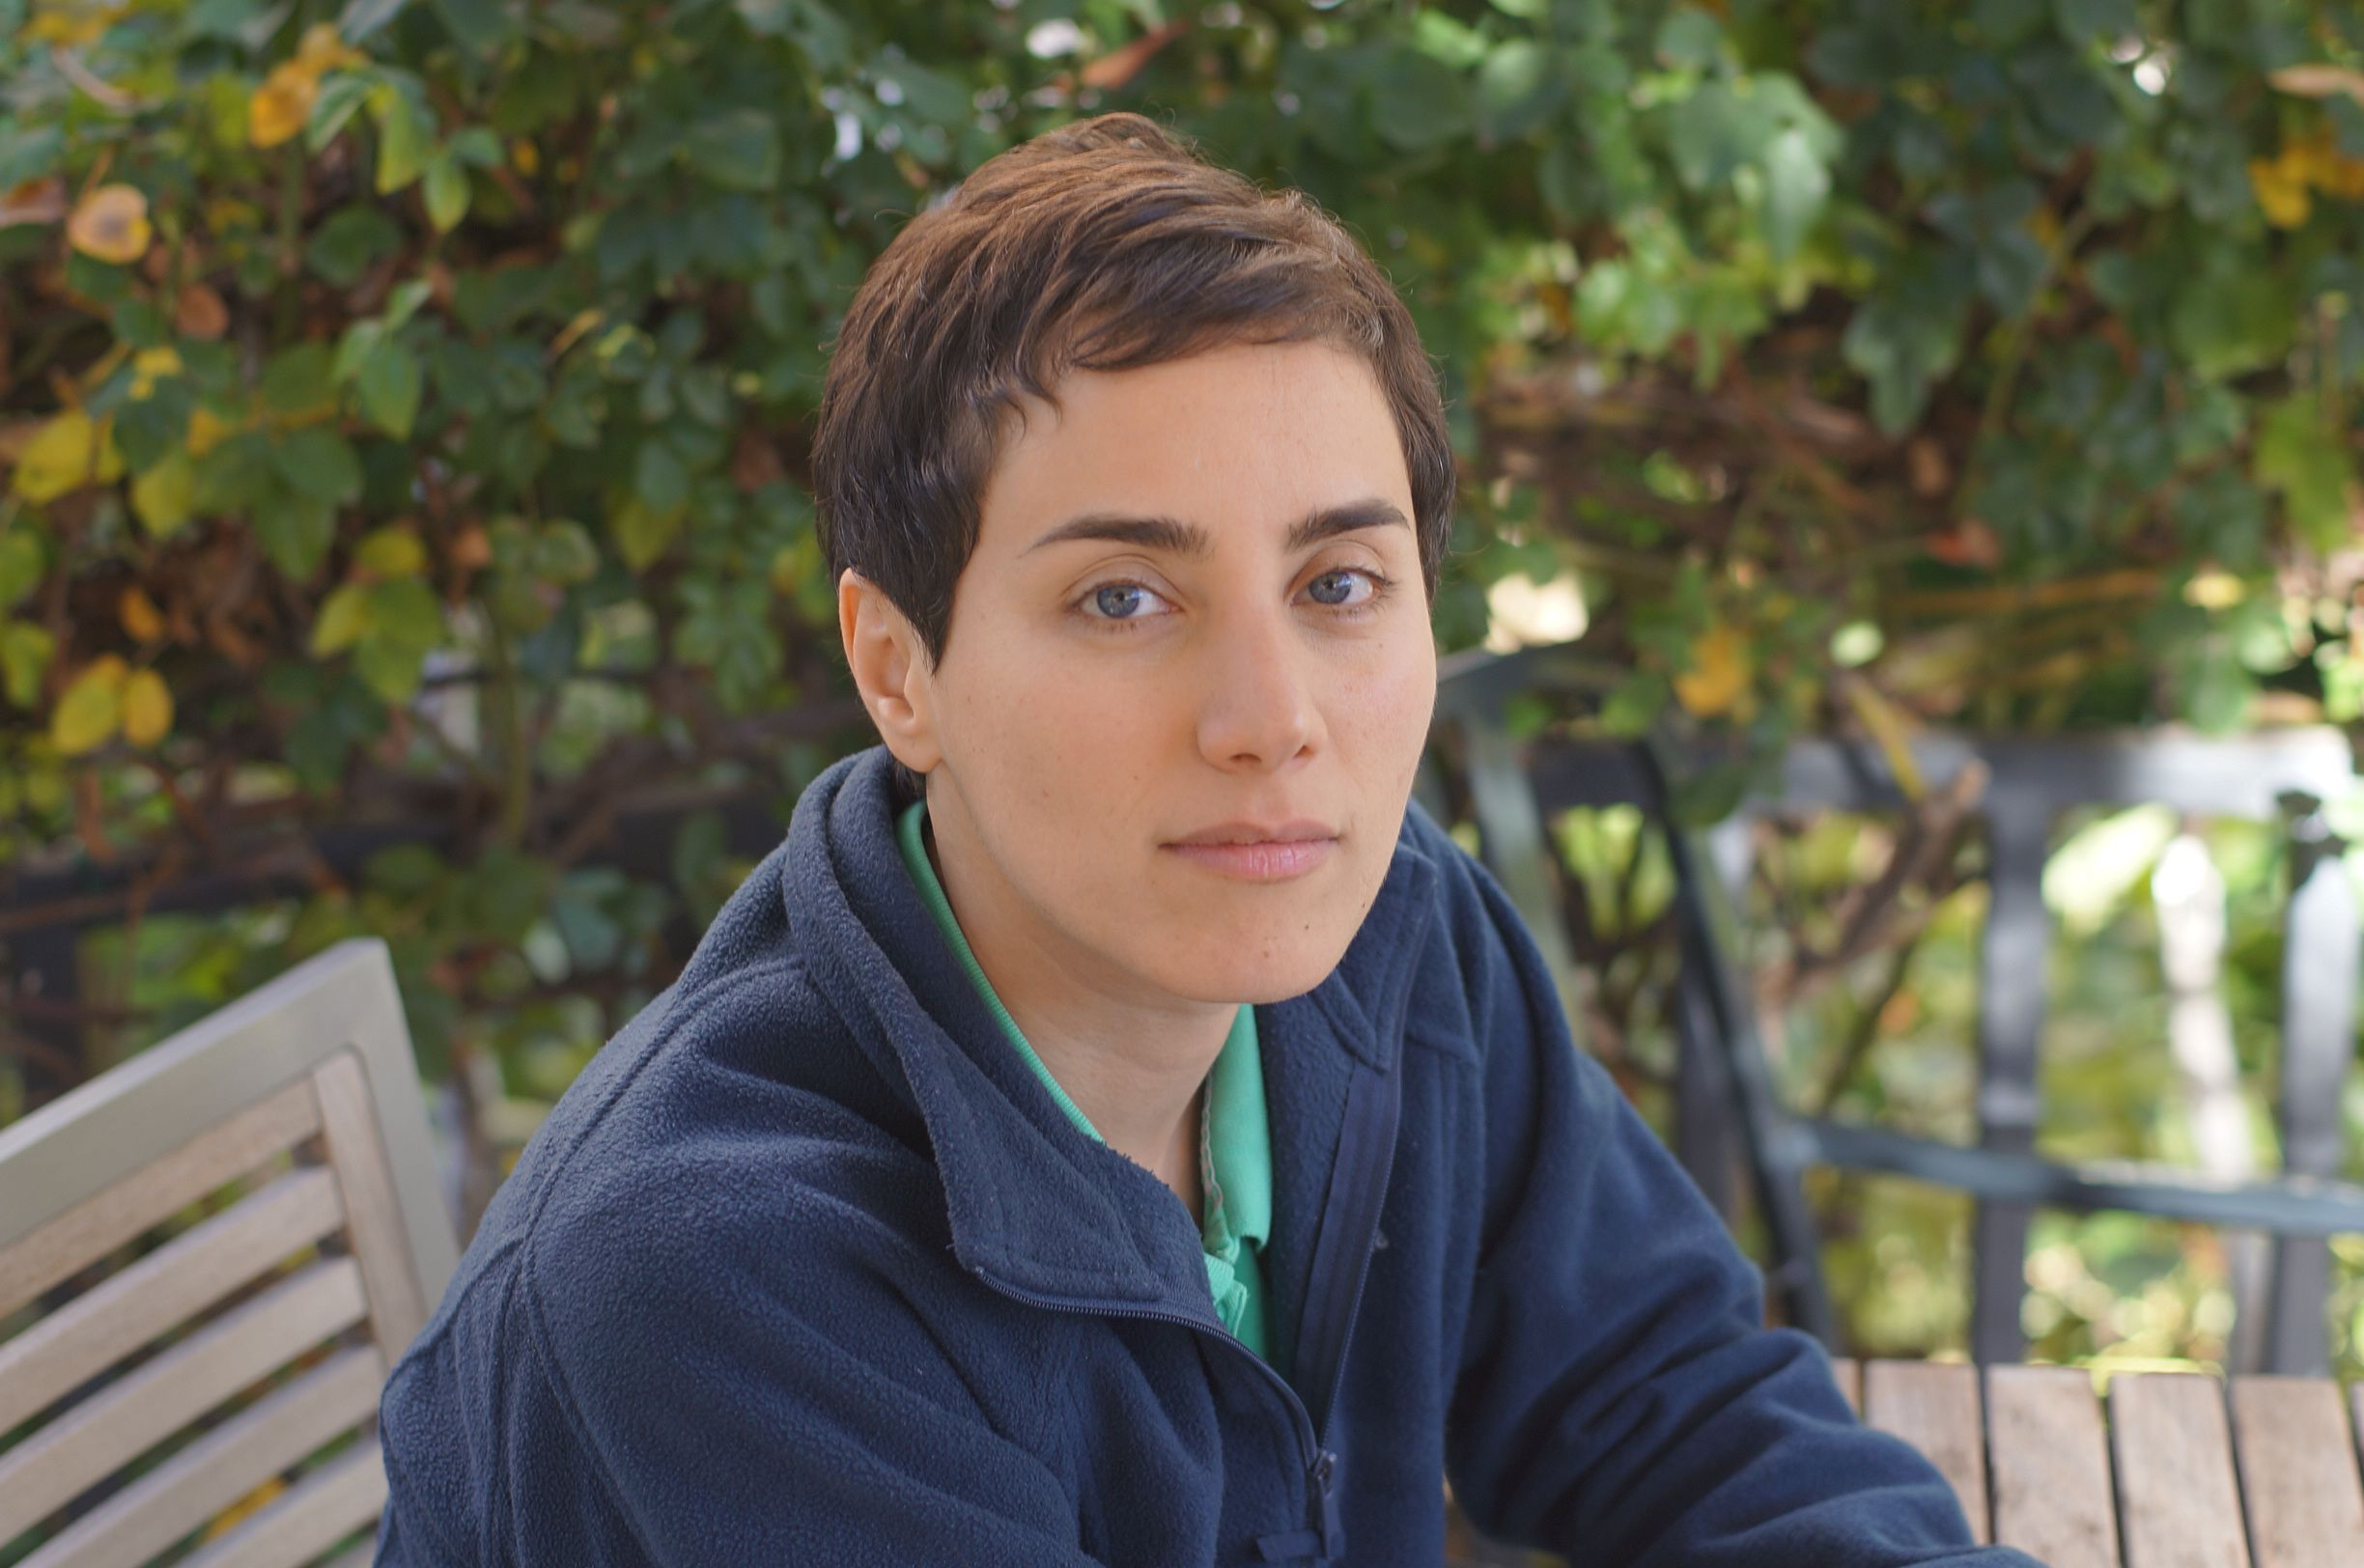 Maryam Mirzakhani, First Woman and Iranian to Win Fields Medal, Dies at 40